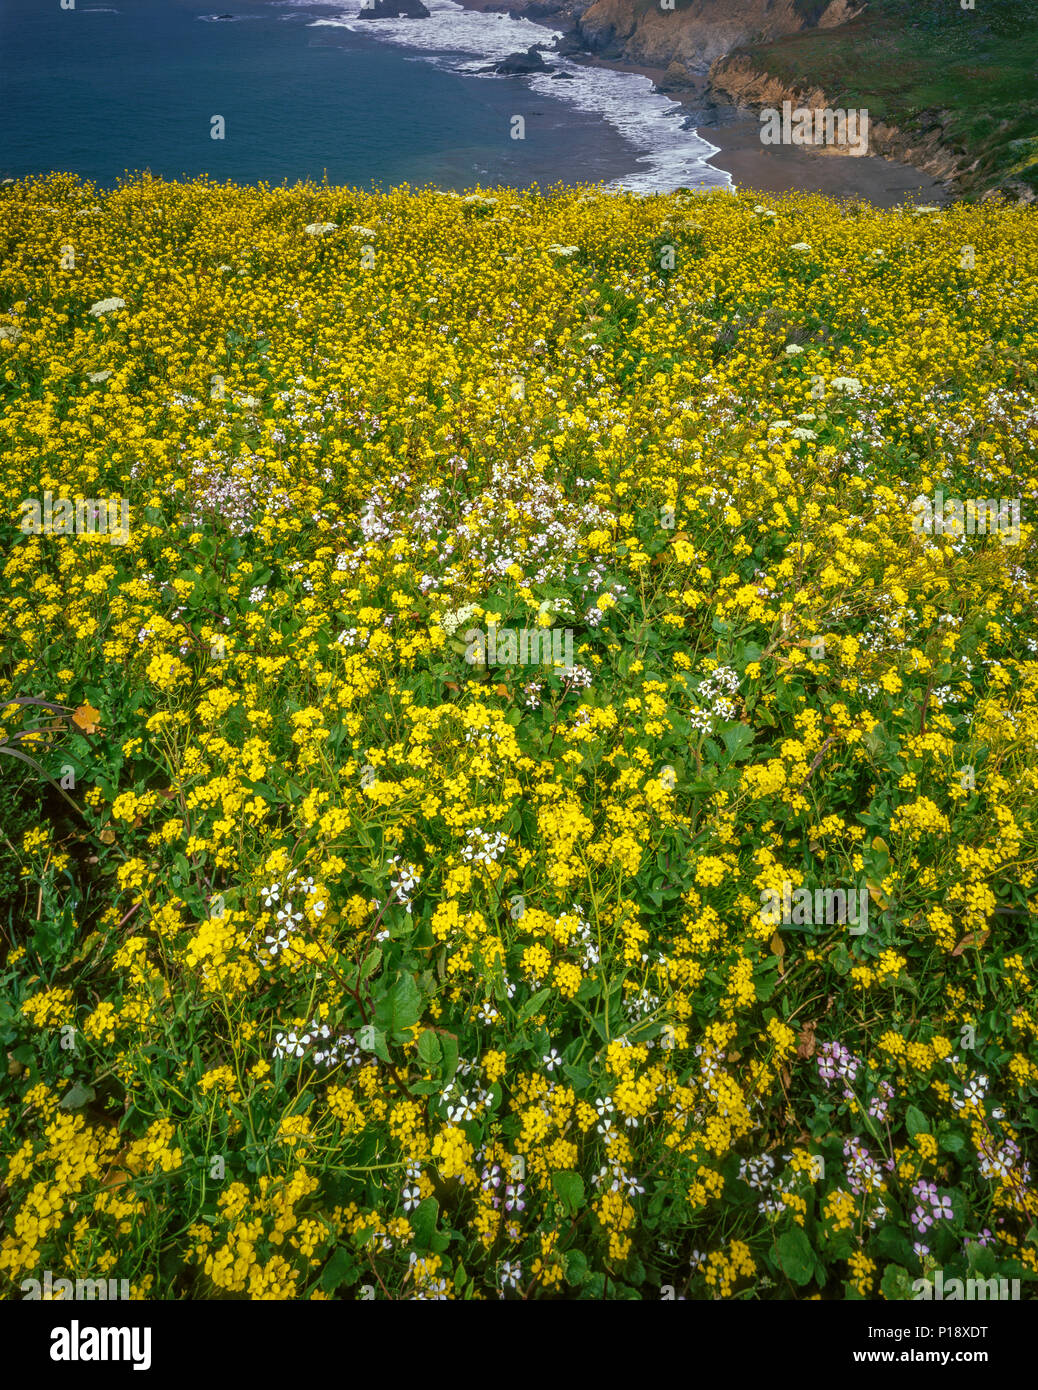 Coastal Fog, Wild Mustard, Sinapis arvensis, Rodeo Beach, Golden Gate National Recreation Area, Marin County, California - Stock Image